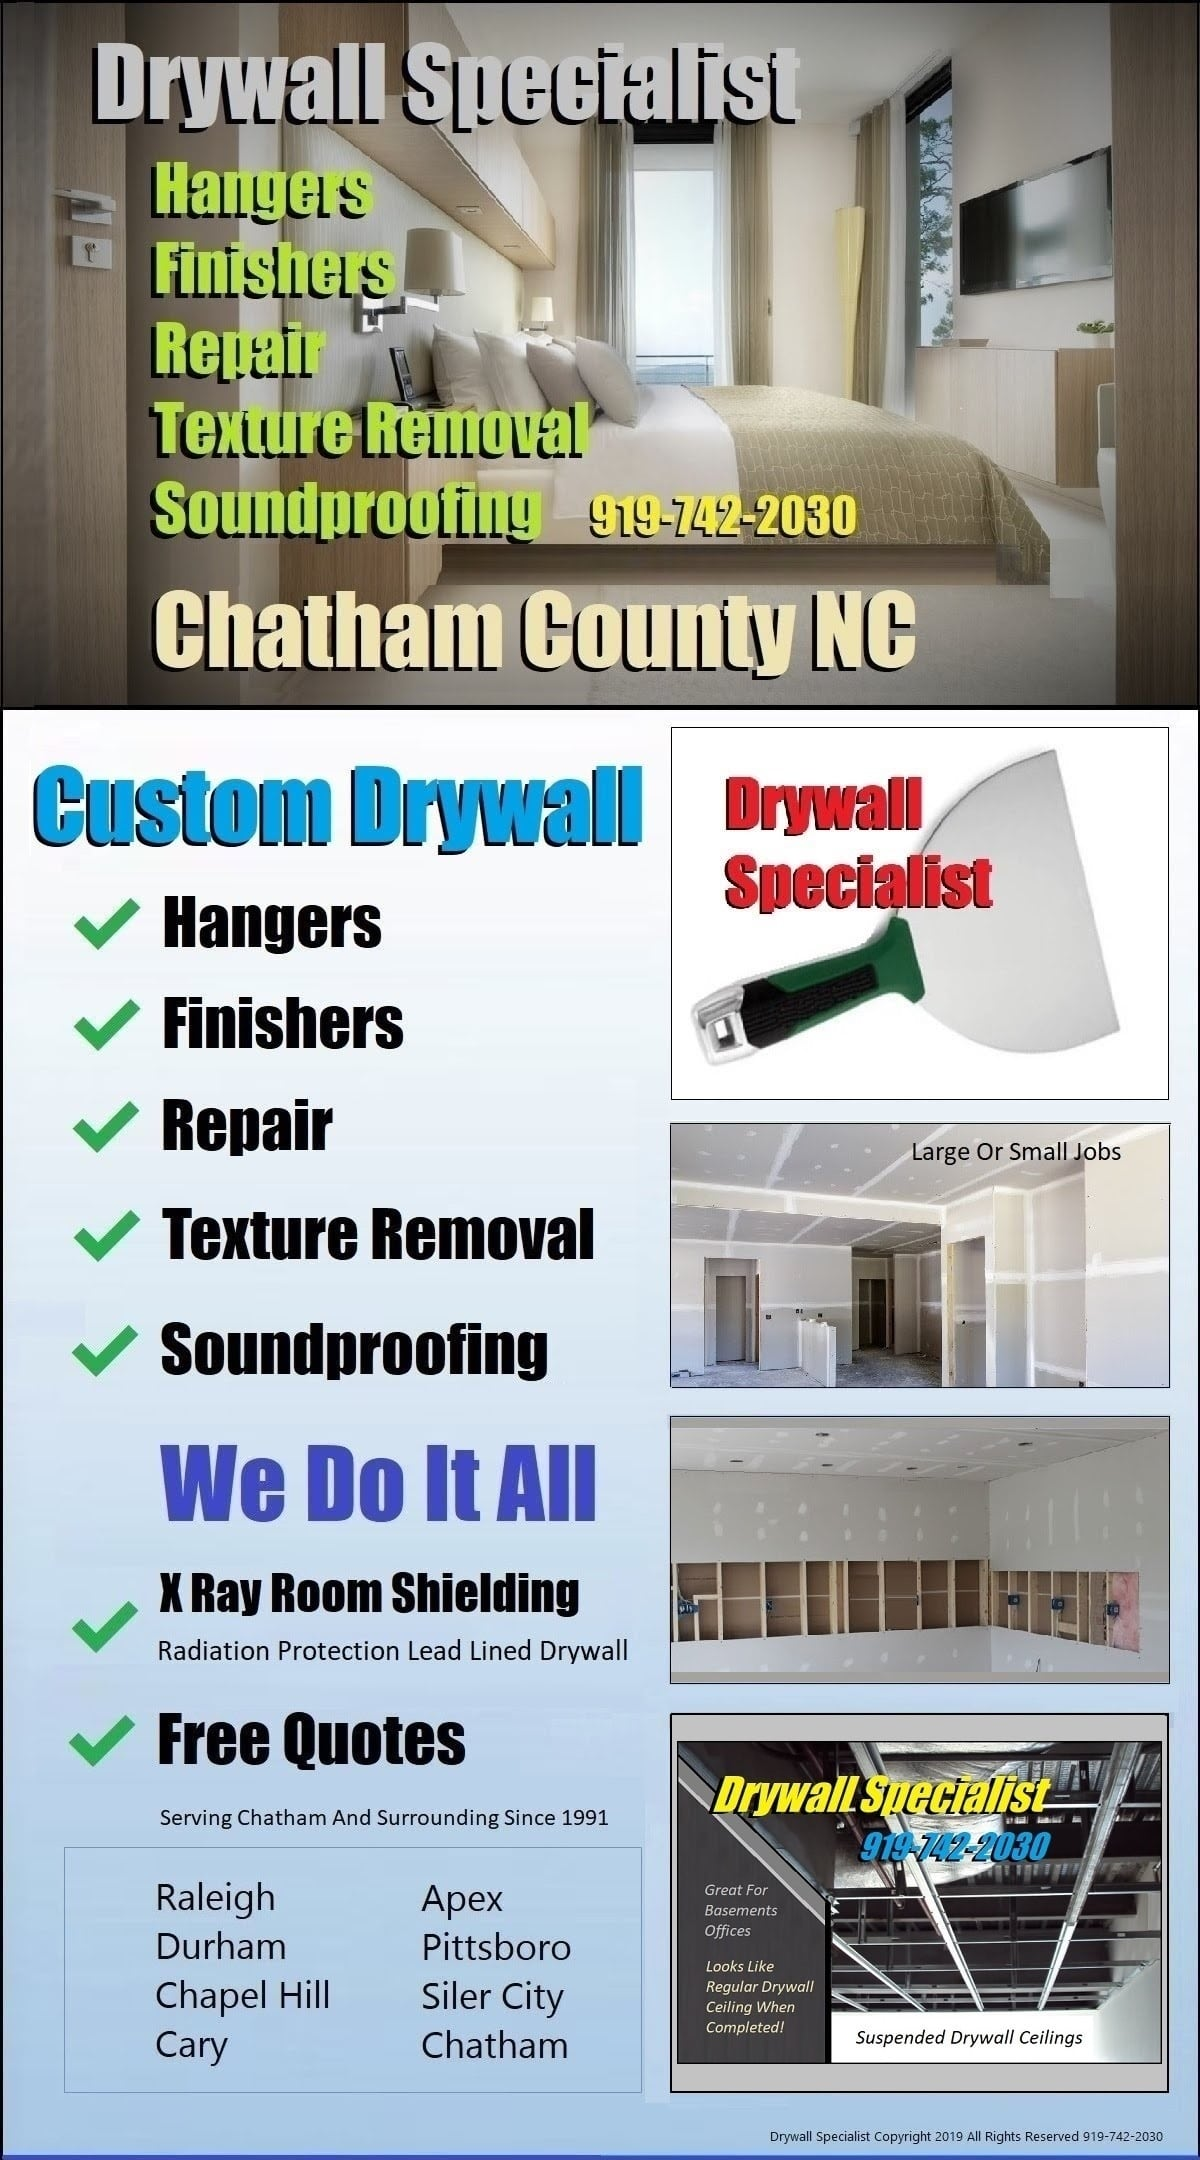 Nextdoor Wallboard Companies Hanger Finisher Repair And Popcorn Texture Removal Soundproofing Companies | North Carolina